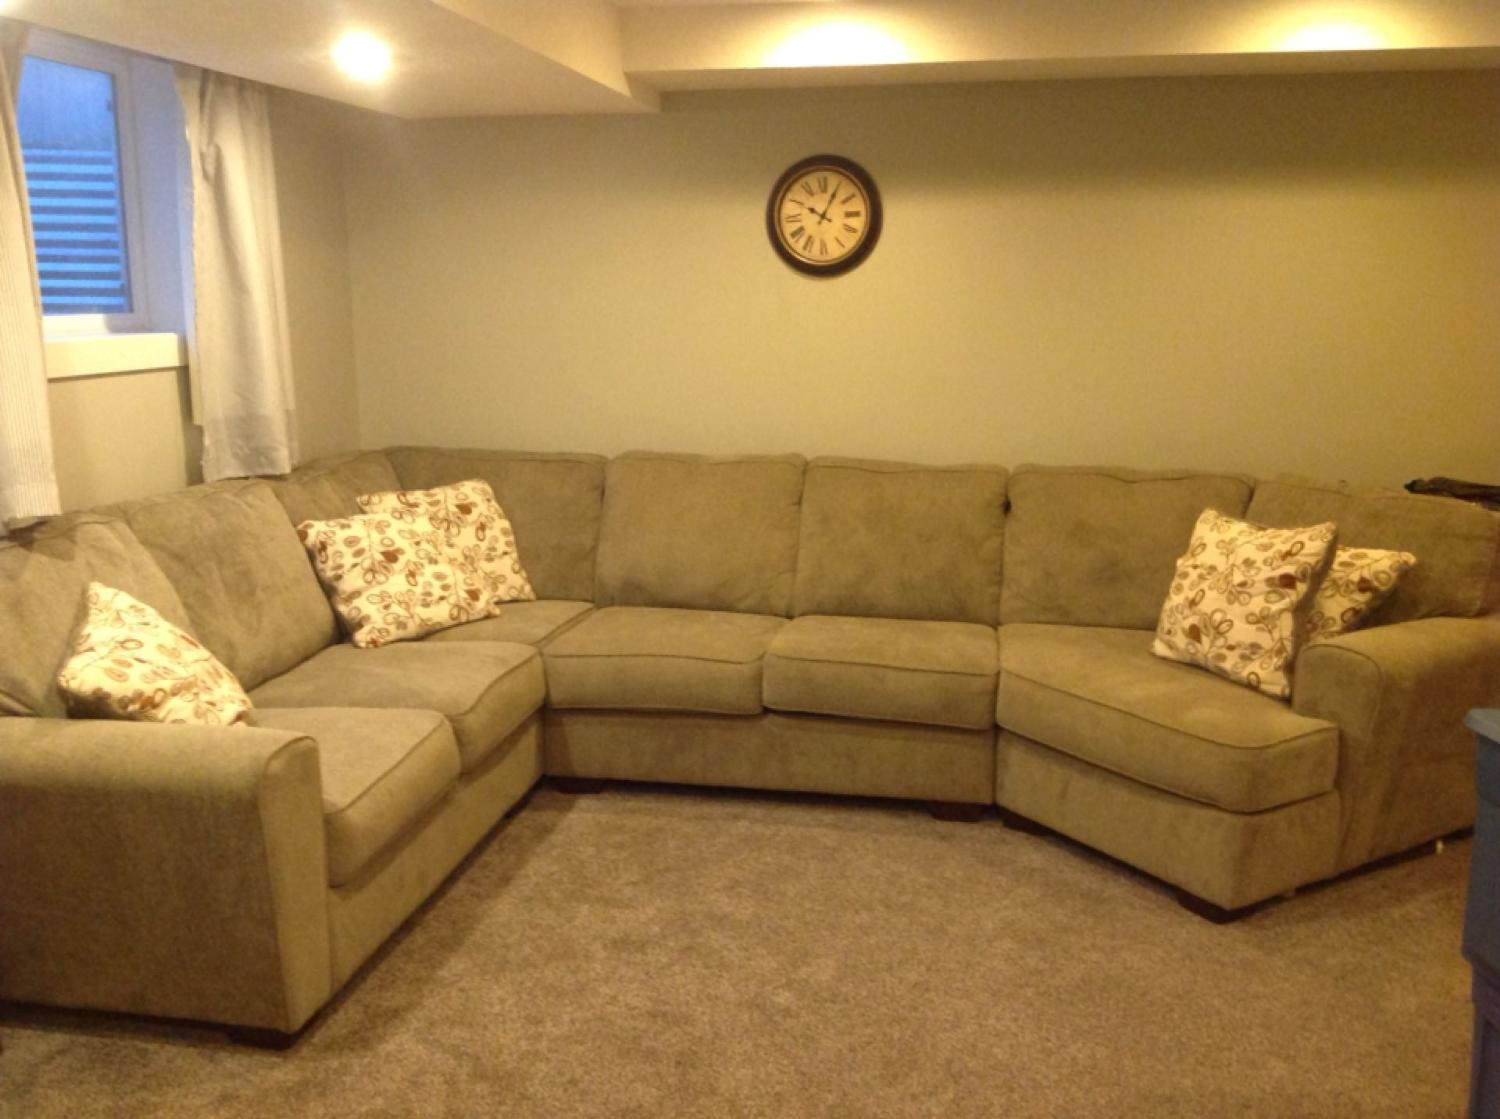 Best Patola Park 4 Piece Modular Sectional For Sale In Calgary